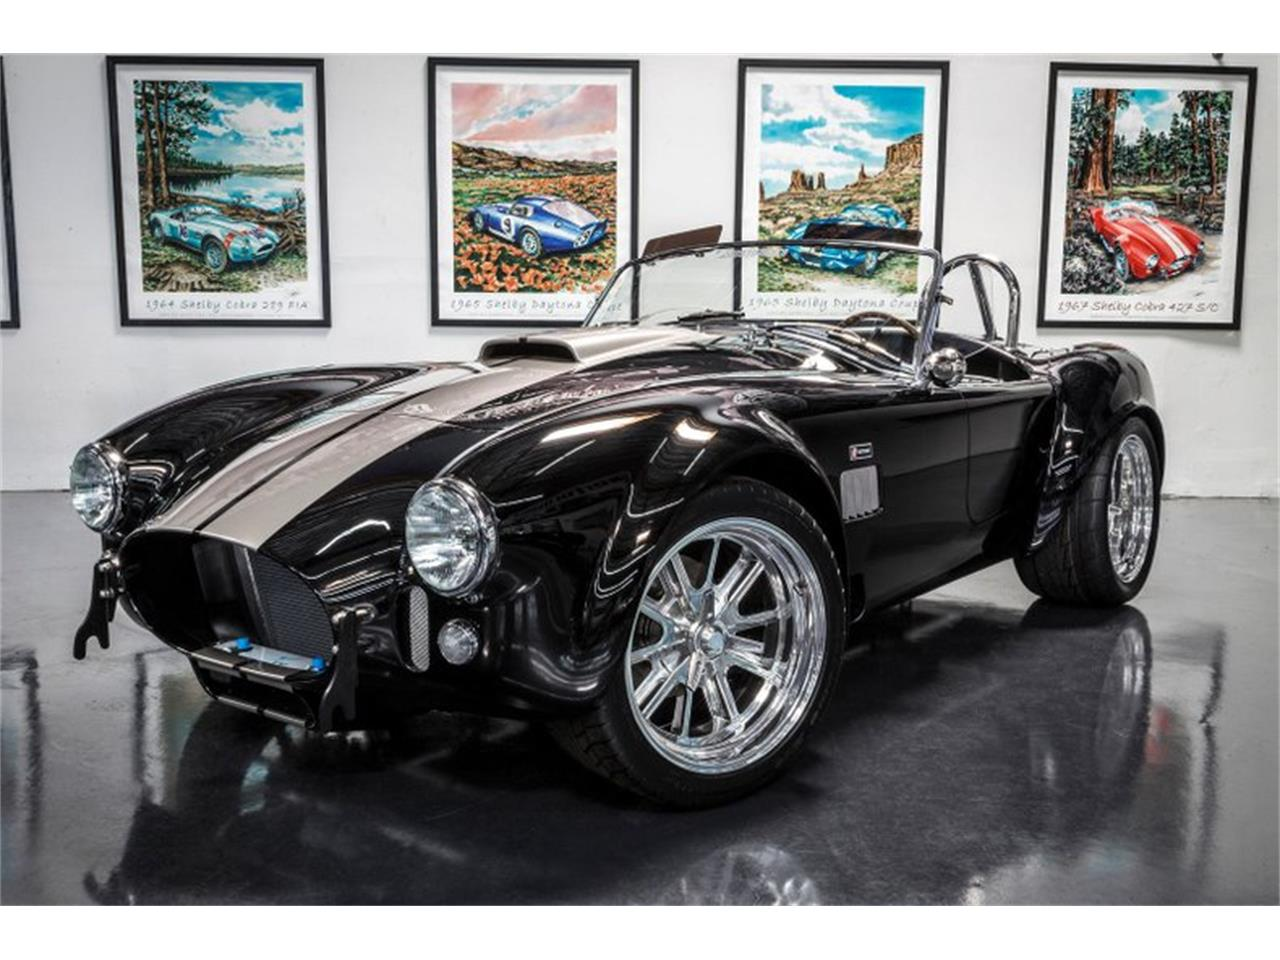 1900 Superformance MKIII (CC-1306947) for sale in Irvine, California